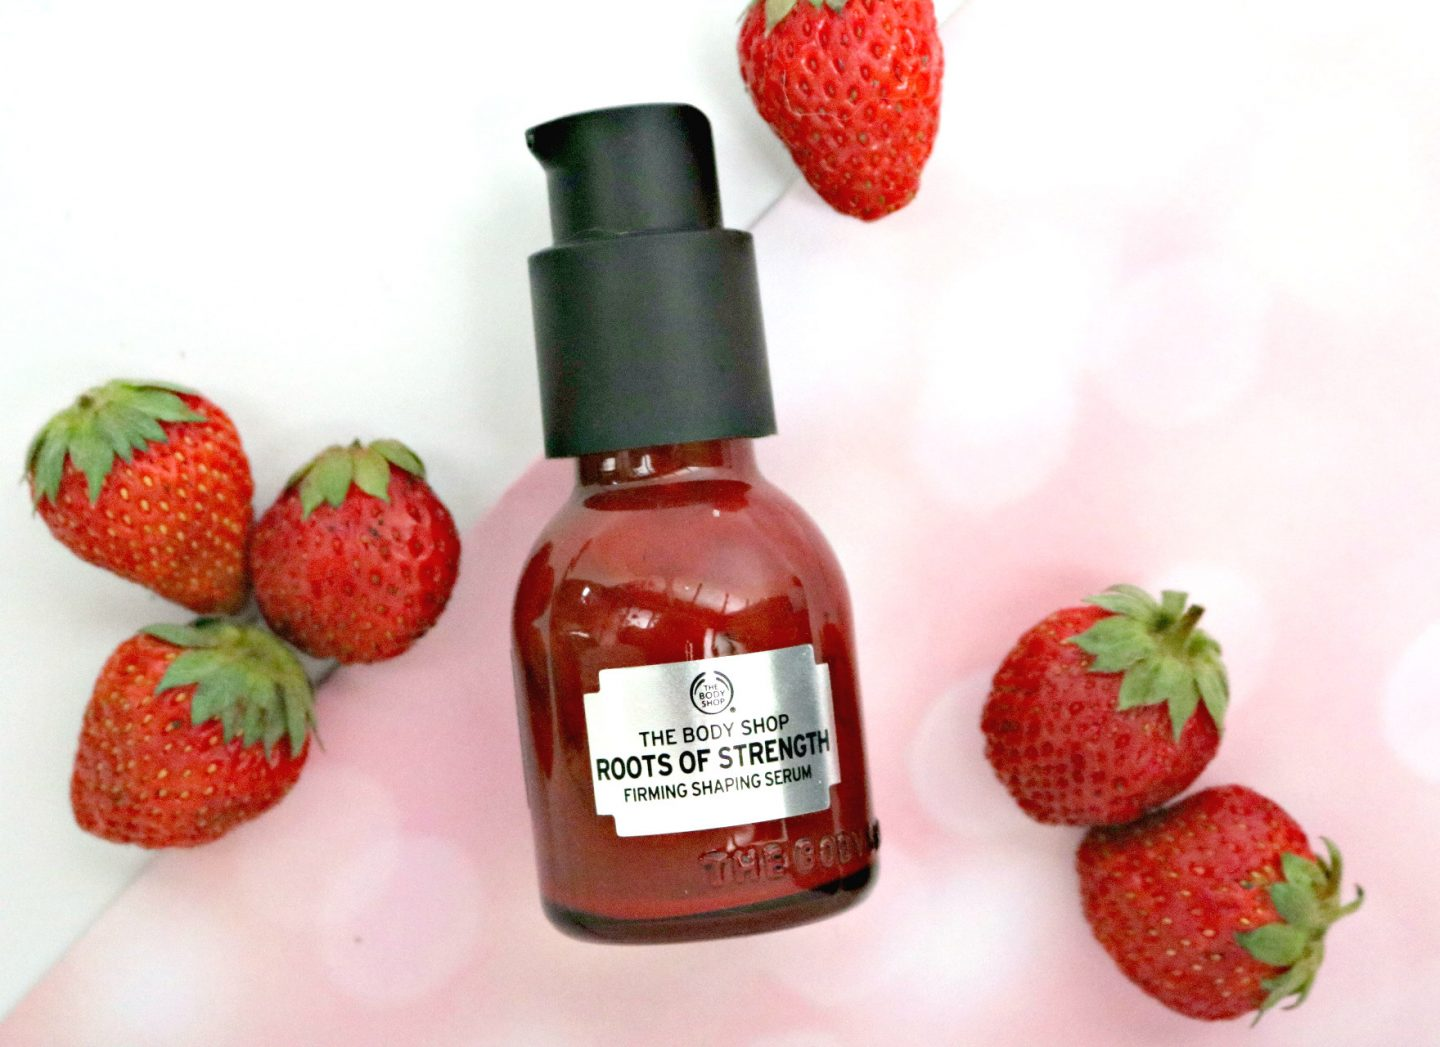 The Body Shop Roots of Strength serum